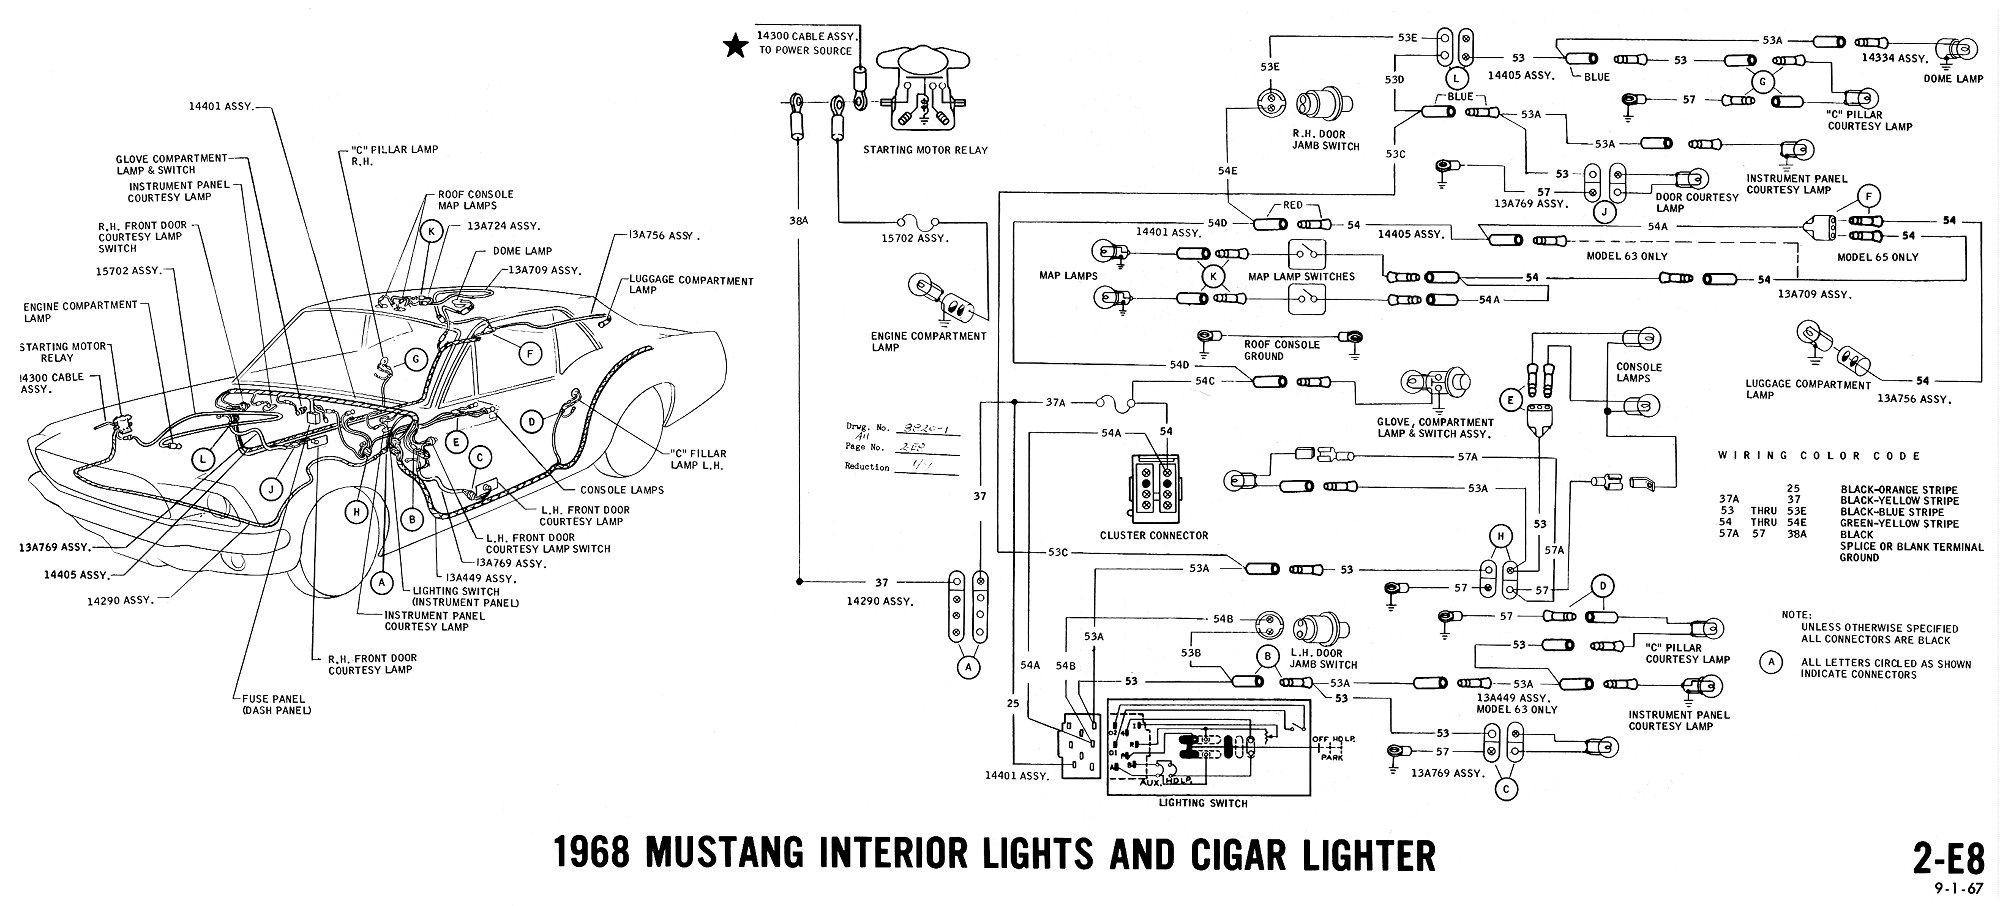 E8 wiring diagrams for 1965 mustang lighting readingrat net 1965 mustang turn signal wiring diagram at crackthecode.co